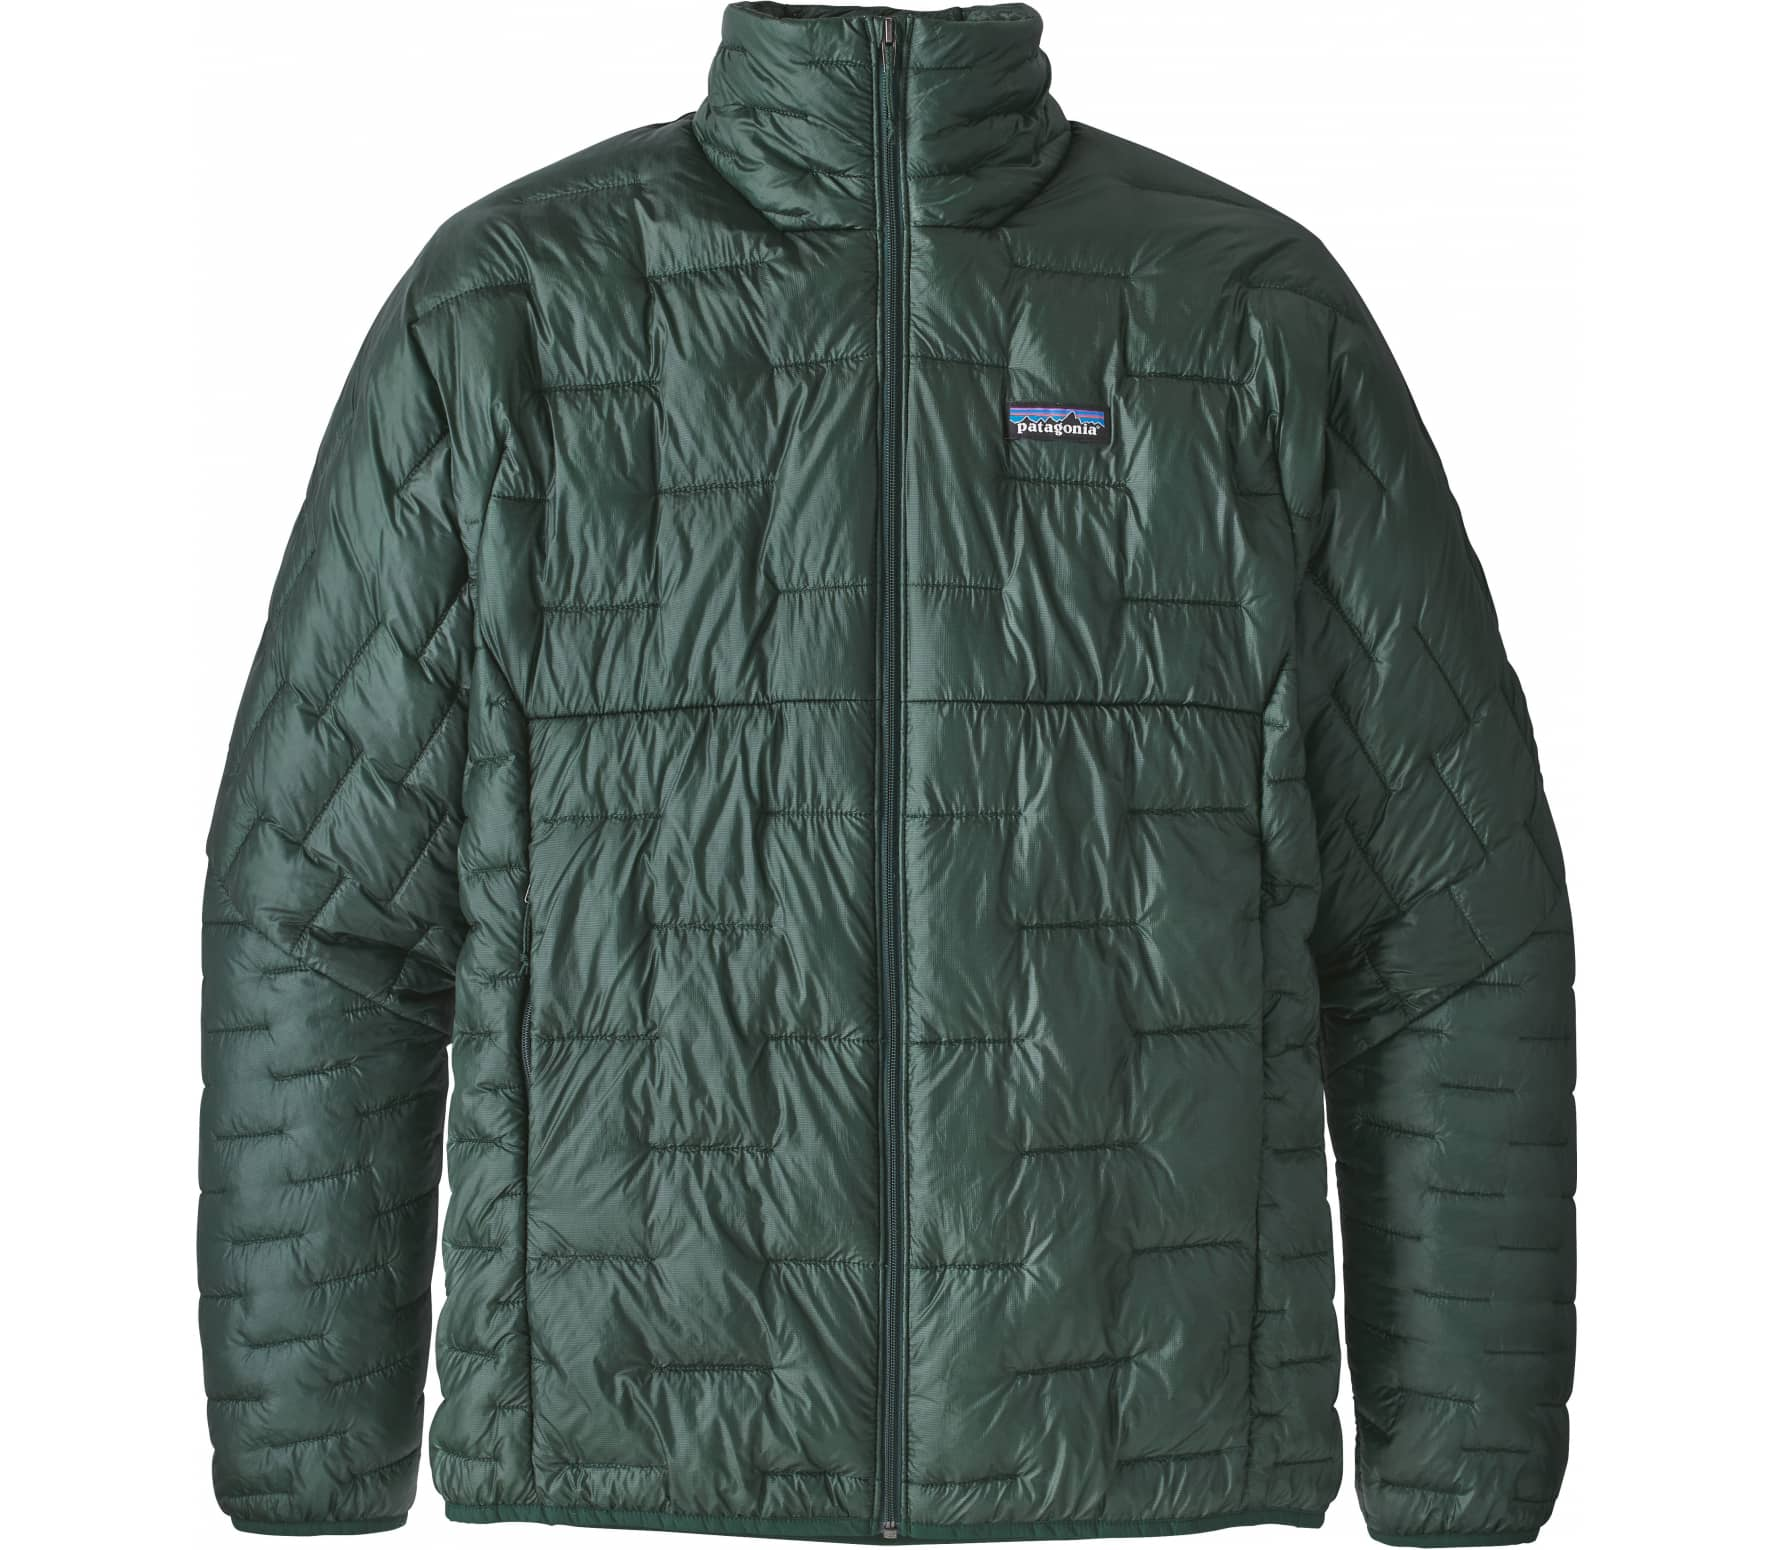 Patagonia - Micro Puff men's hybrid jacket (green)